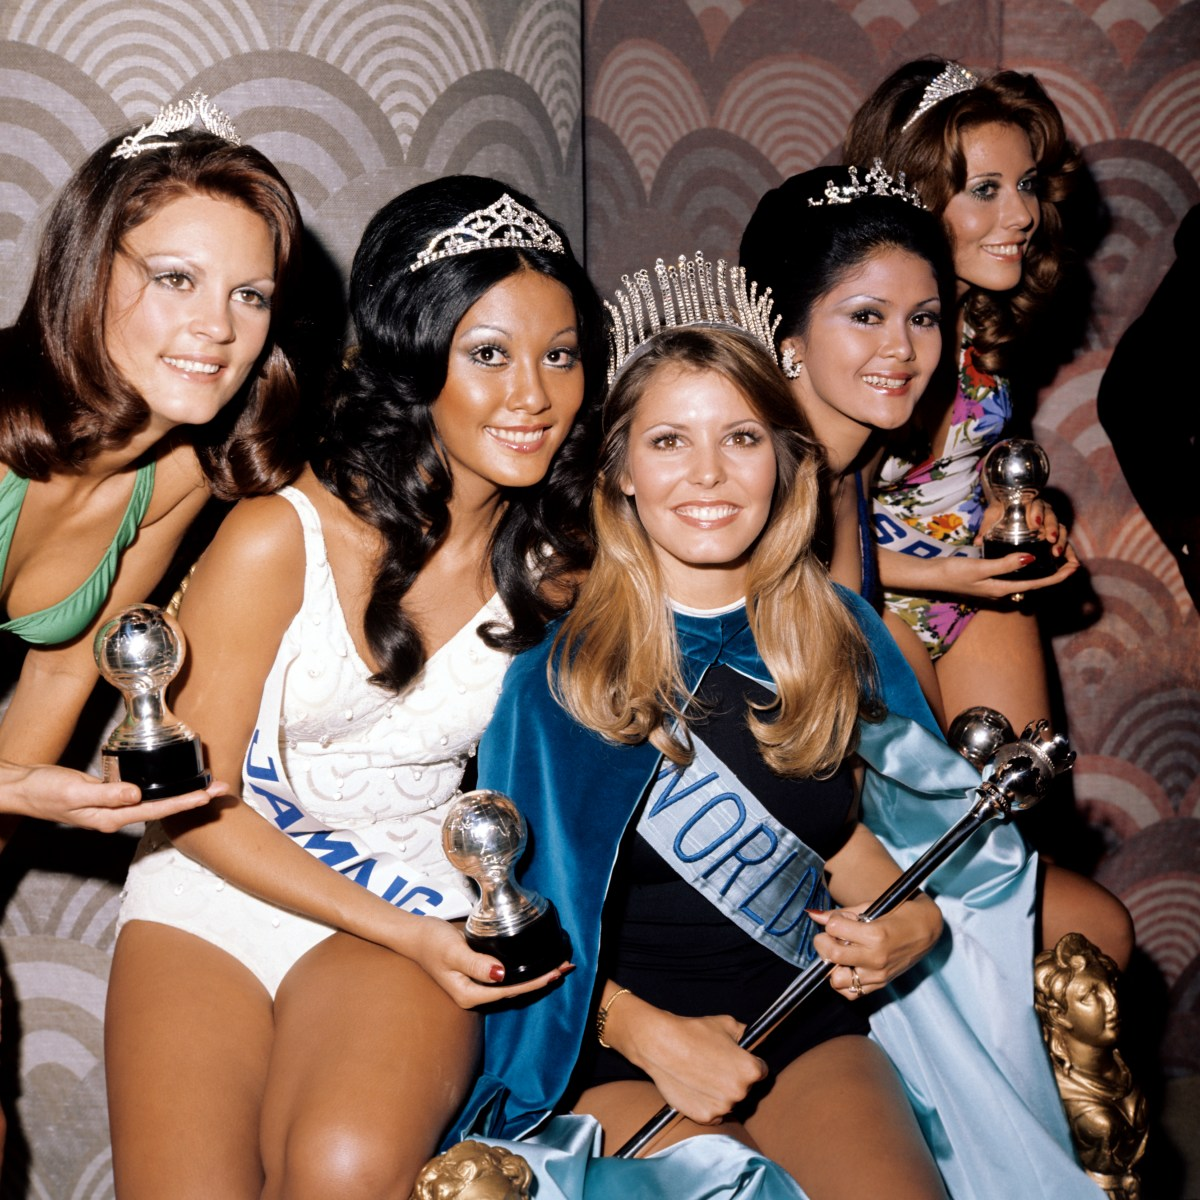 Marjorie (centre) with runners-up (l-r) Miss South Africa, Miss Jamaica, Miss Philippines and Miss Israel, after she was crowned Miss World 1973